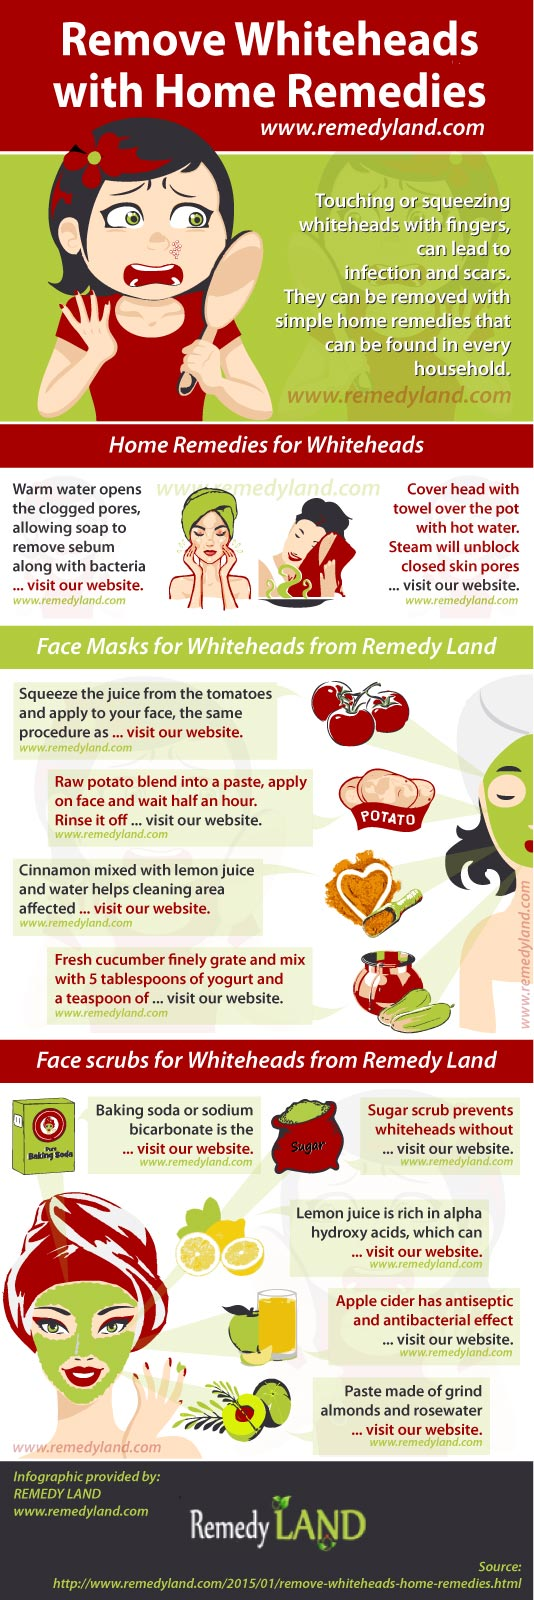 remove whiteheads with home remedies